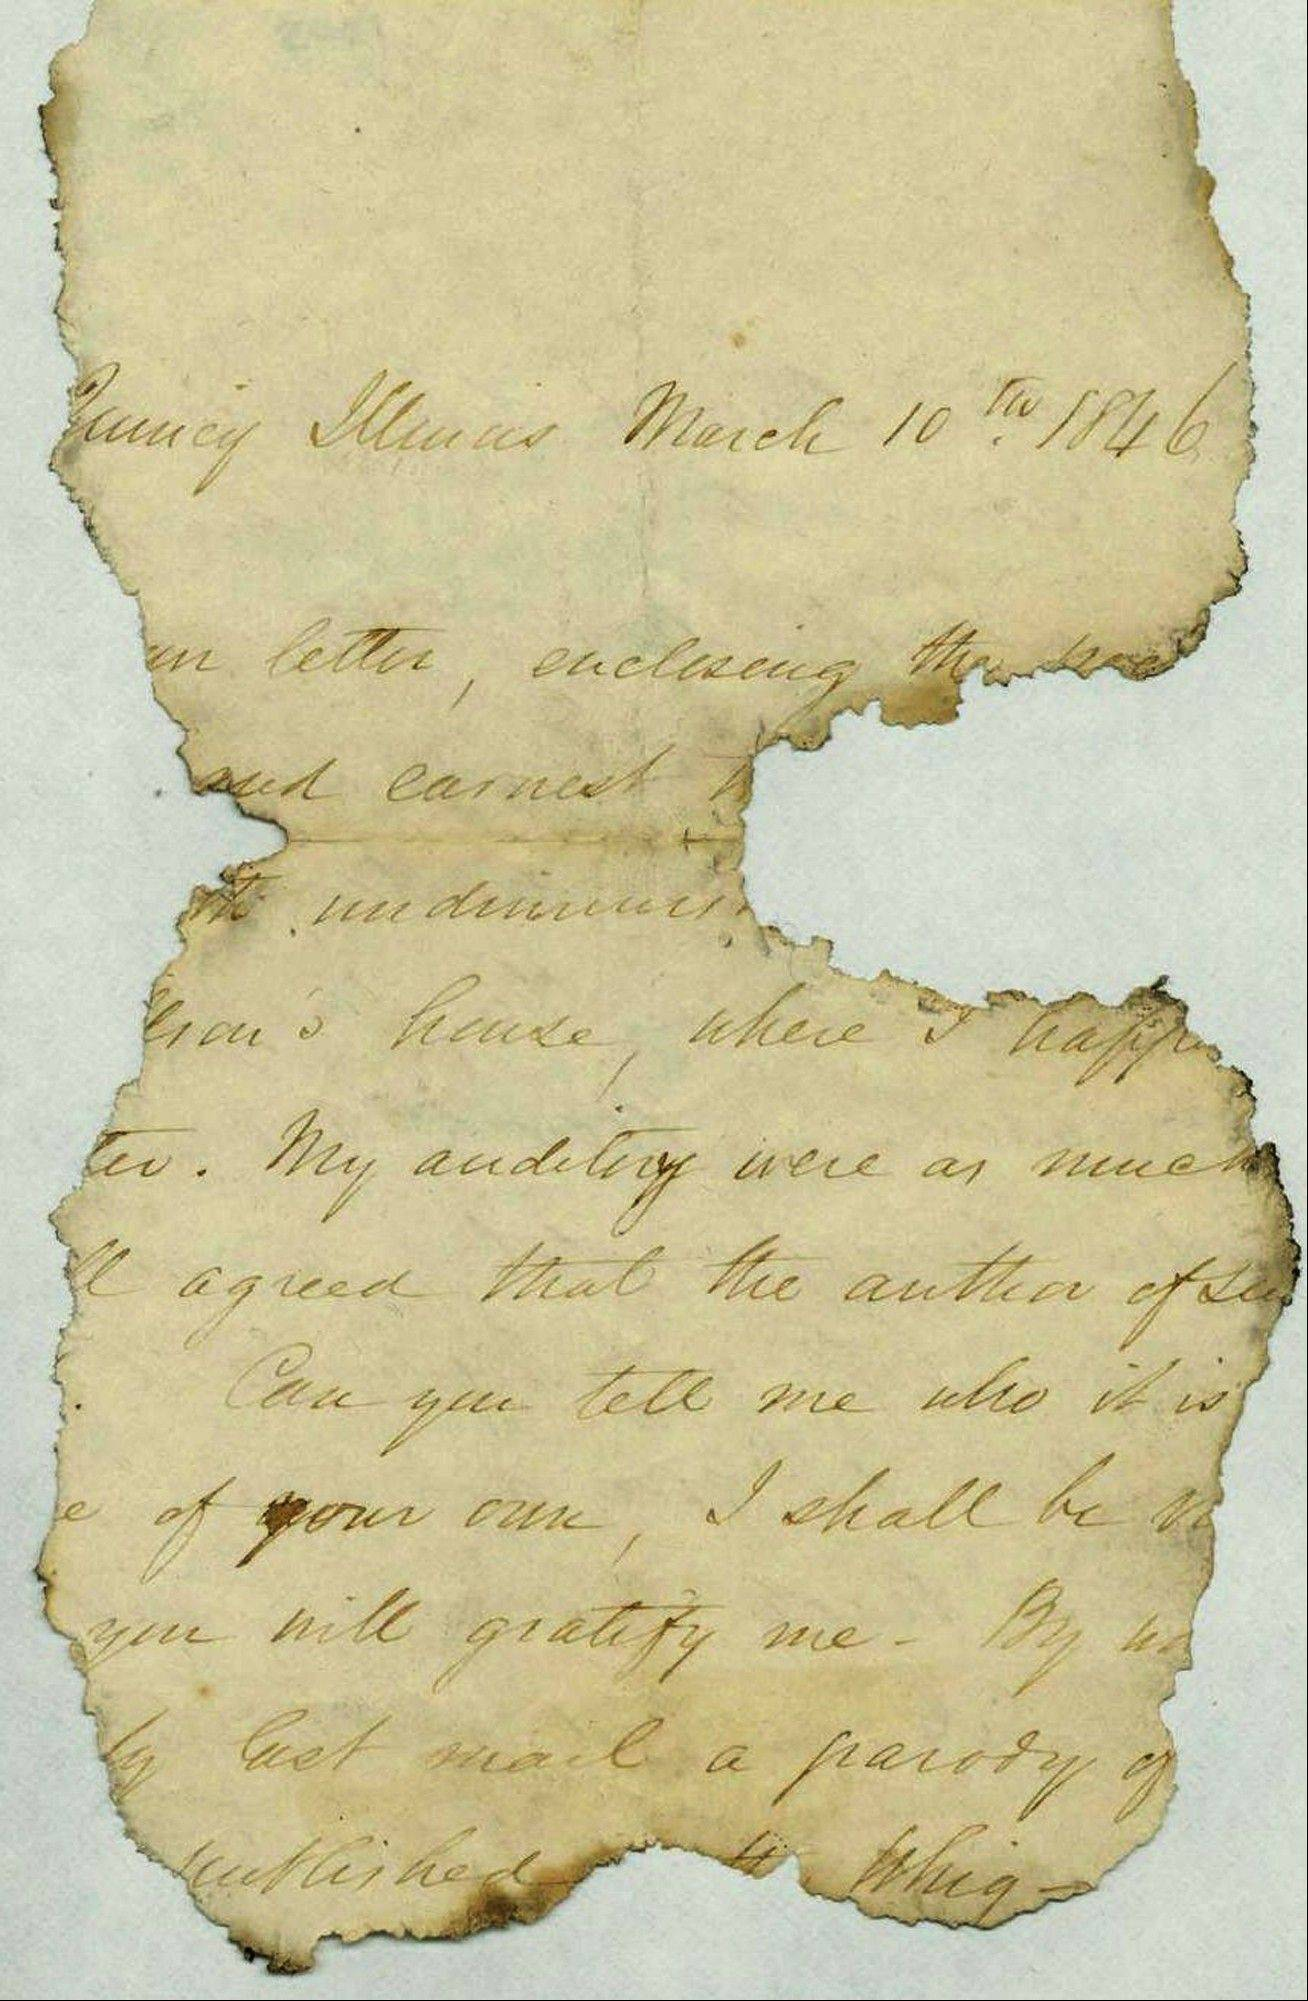 A project administered by the Abraham Lincoln Presidential Library and Museum in Springfield, Ill., shows a letter fragment that was found in a mouse�s nest inside a wall at Abraham Lincoln�s Springfield home more than 25 years ago when workers were renovating the home. Researchers with The Papers of Abraham Lincoln think they�ve finally identified the author of the mystery letter as newspaper editor Andrew Johnston. The March 10, 1846, letter sent from Quincy, Ill., was Johnston�s reply to a poem the future president had shared with him.